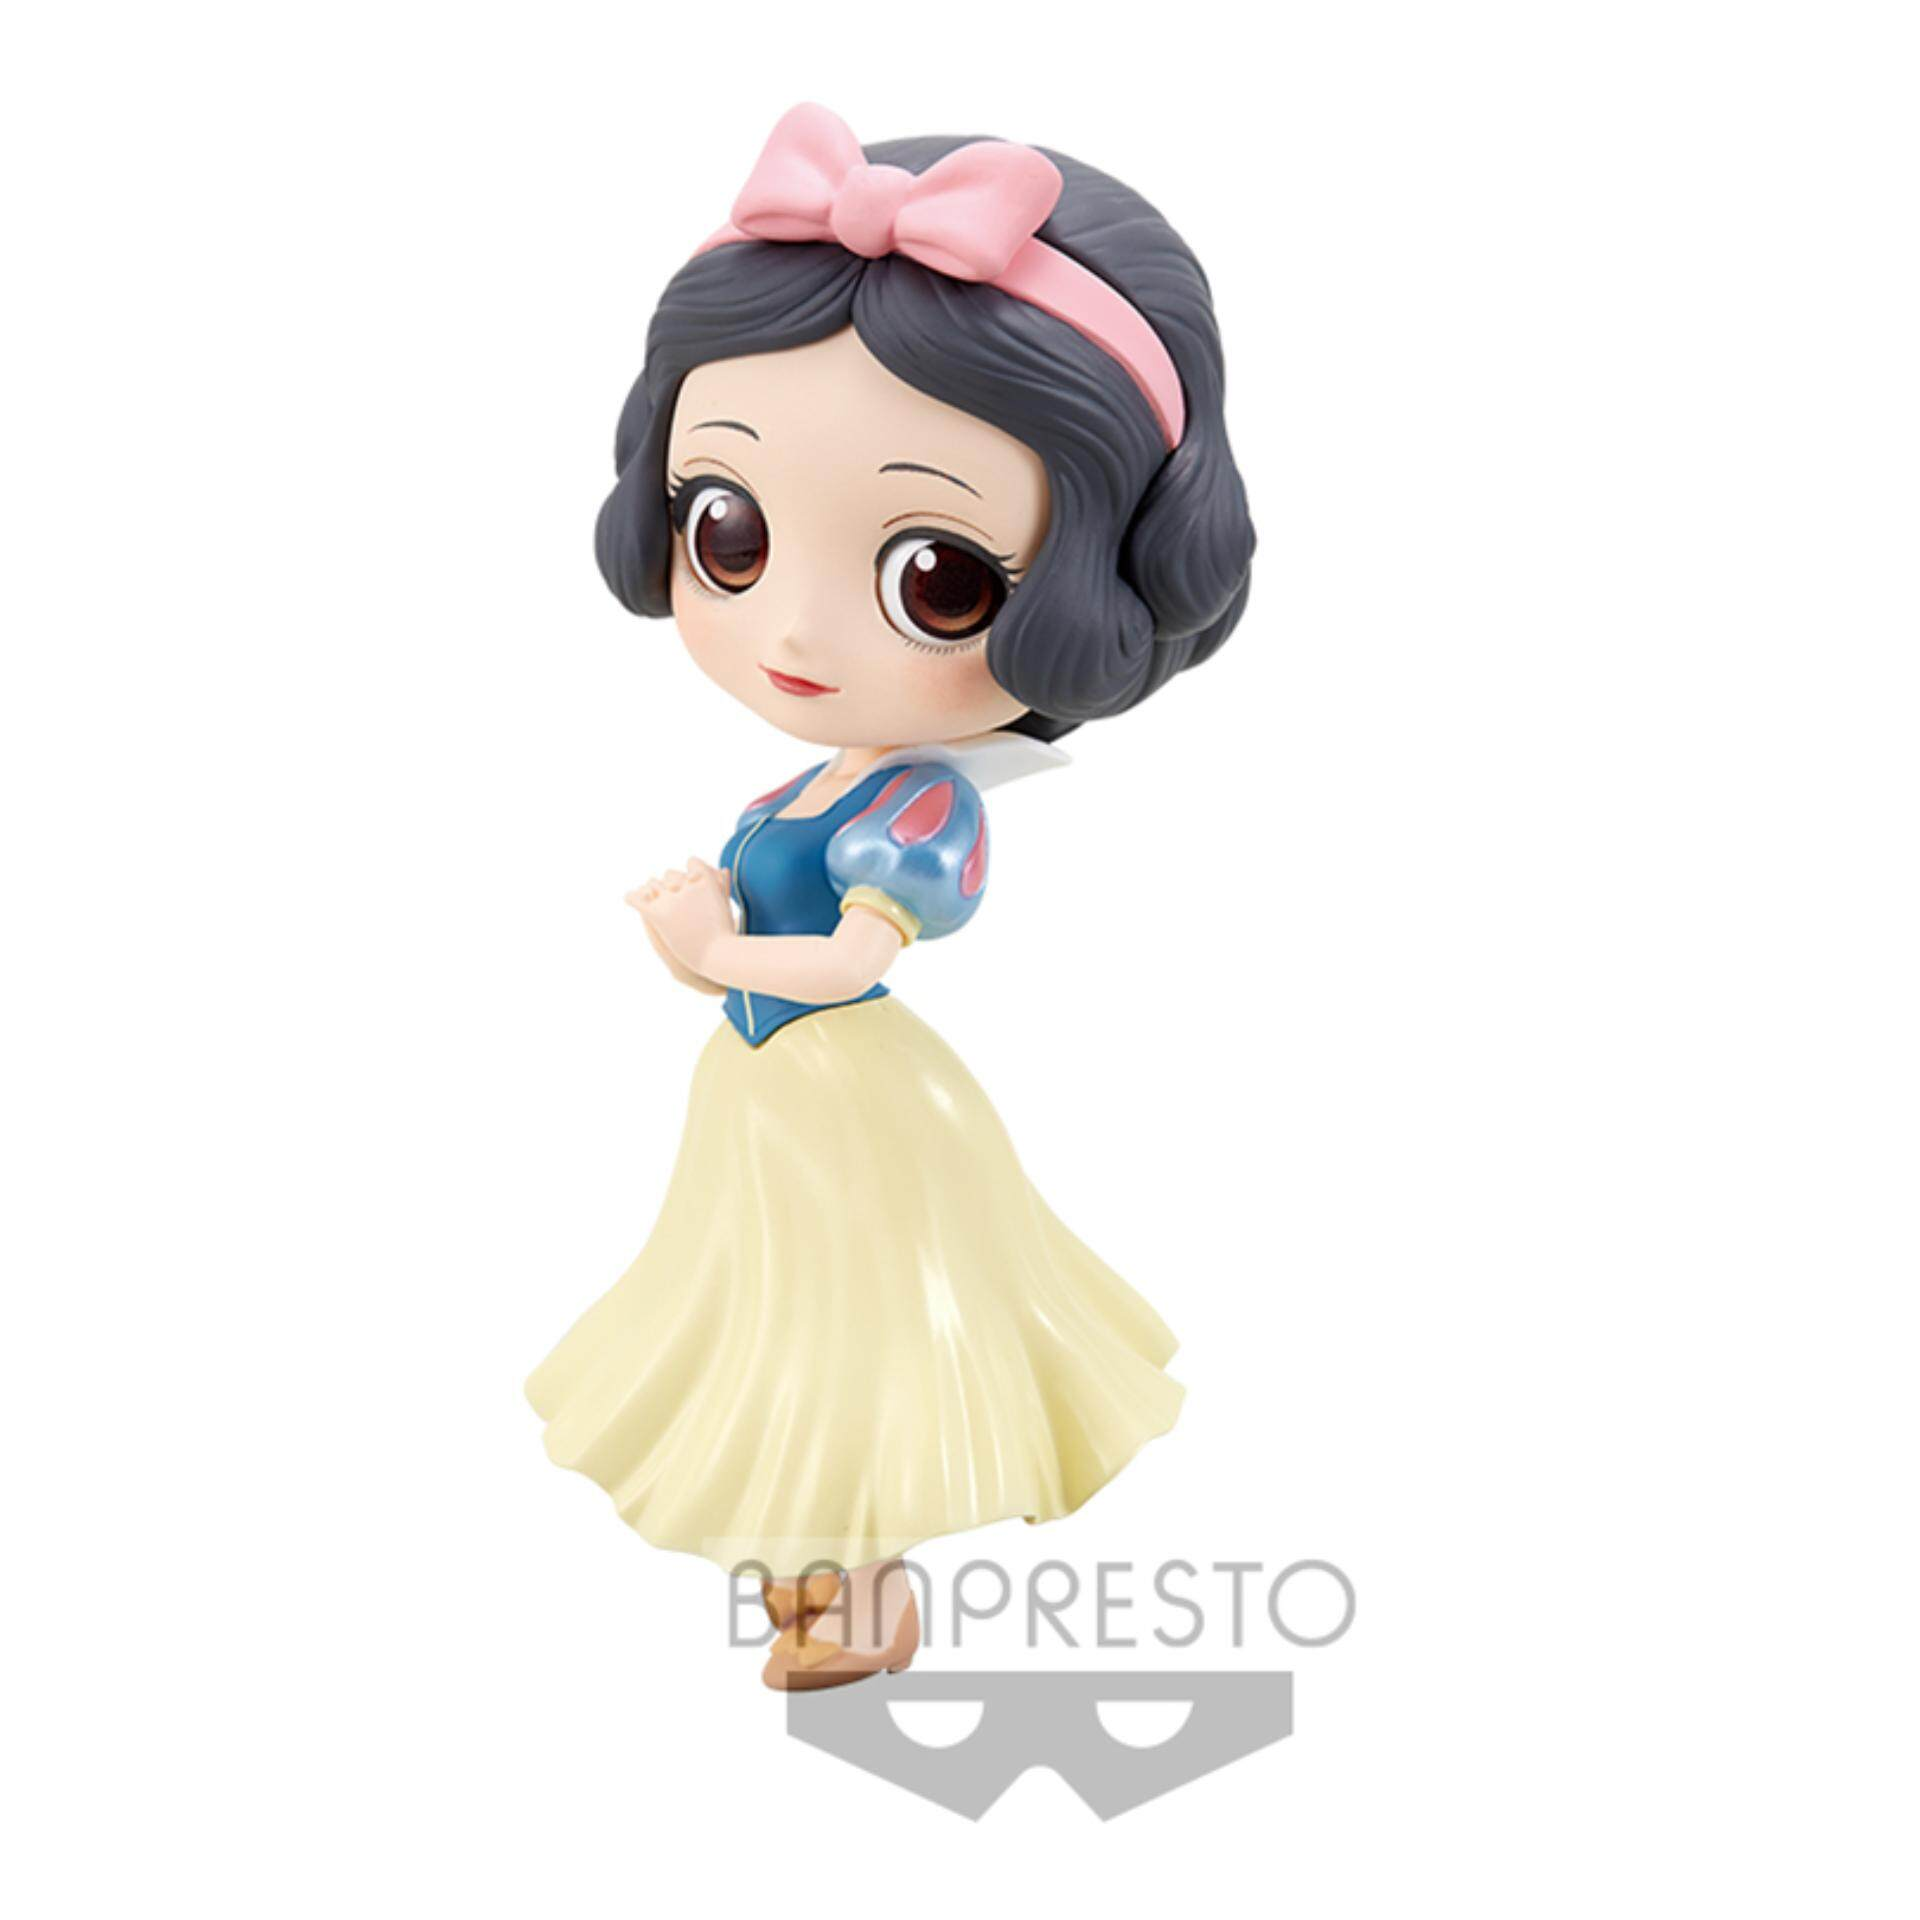 Banpresto Q Posket Disney Princess Figure Pastel Version - Snow White